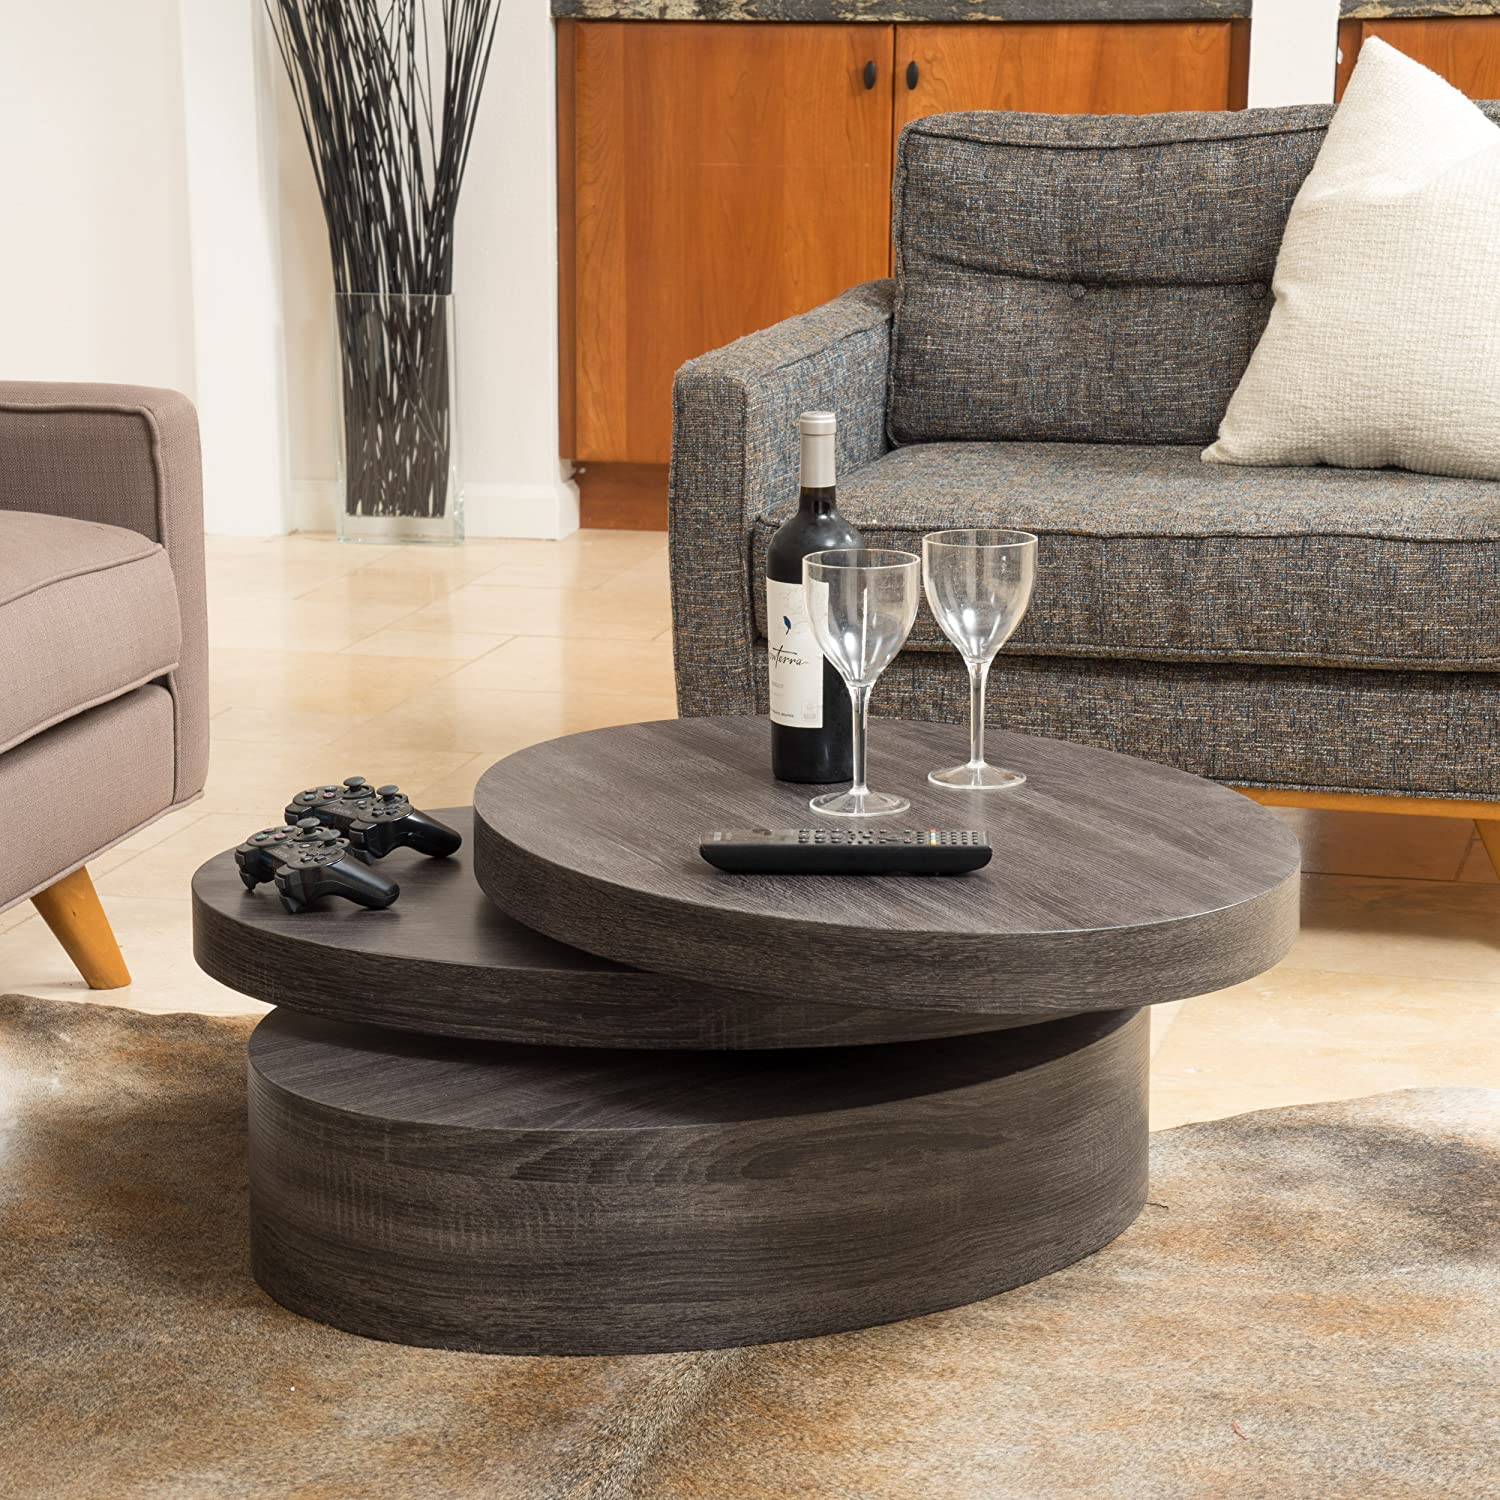 15 Coffee Tables Under 200 Unique Modern Cool Wood Glass Bestlyy 2020 Best Products Curated By Quality [ 1500 x 1500 Pixel ]